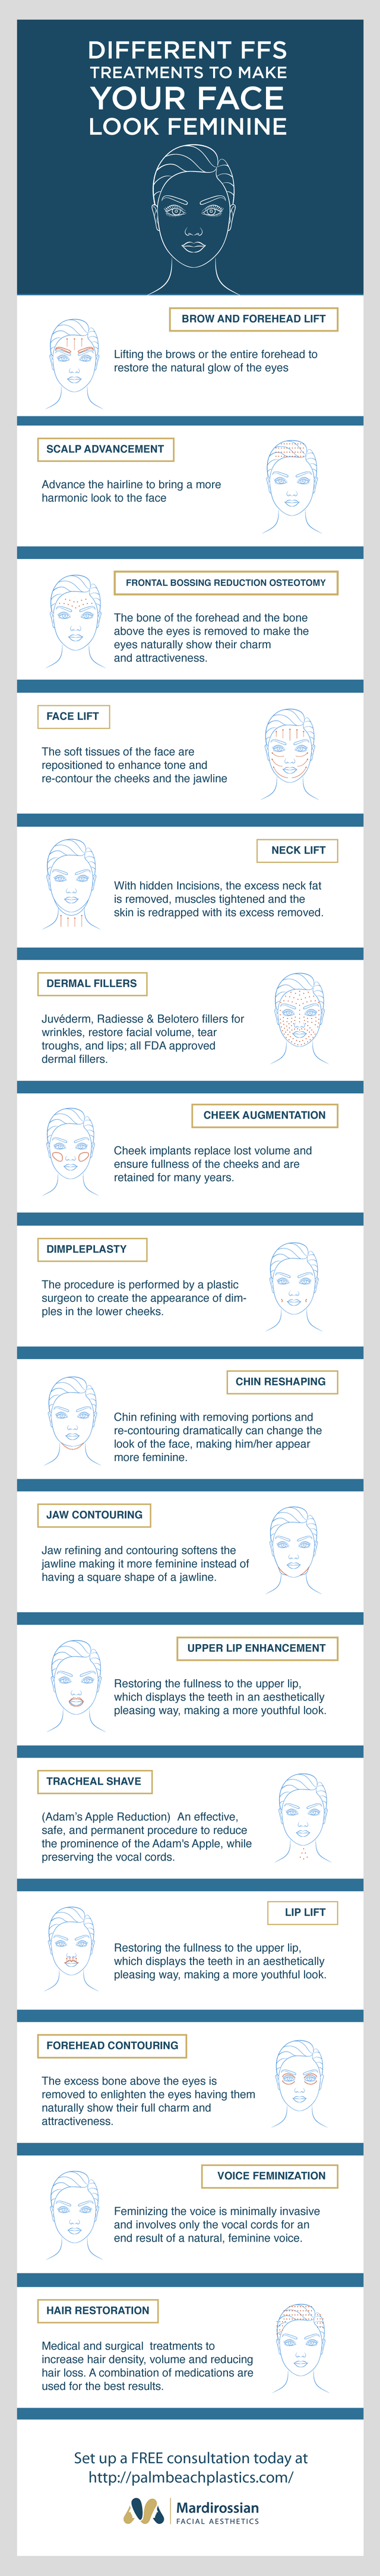 Different ffs treatments to make your face look feminine infographic